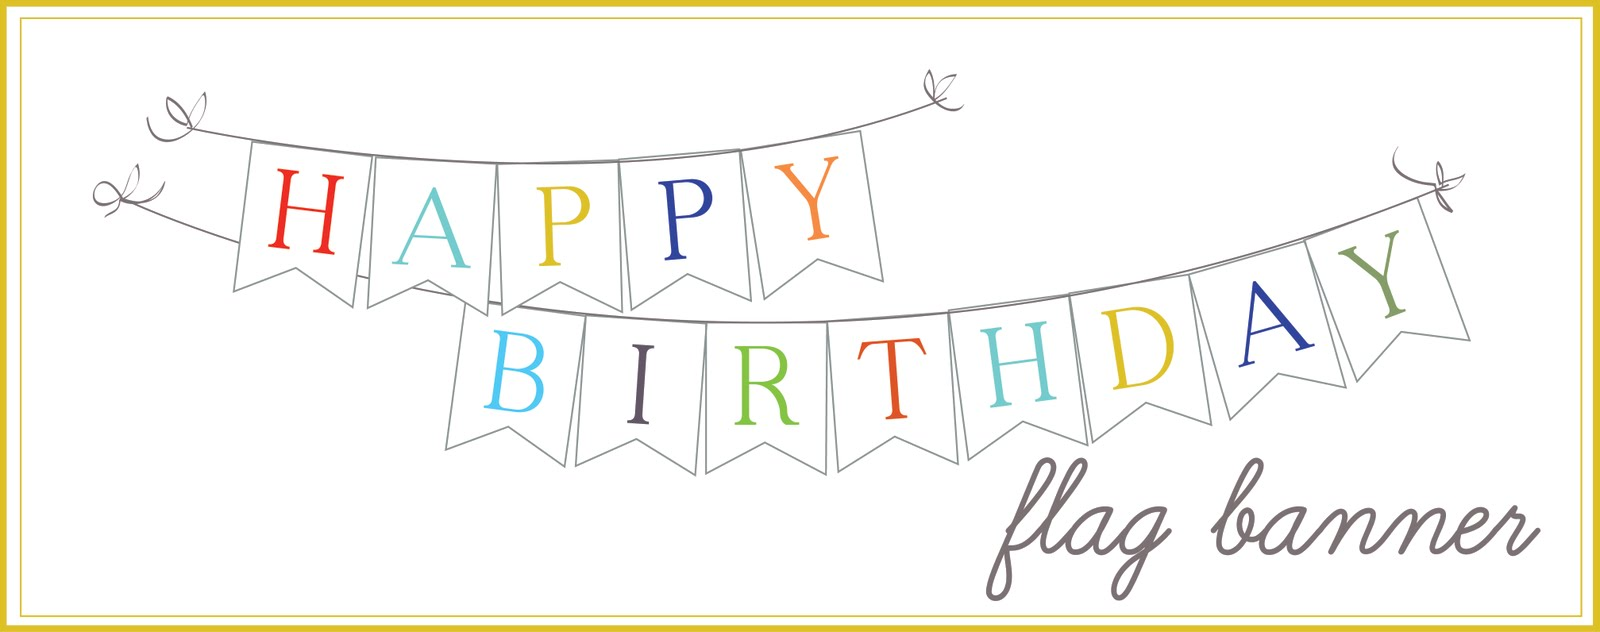 10 Images of Happy Birthday Banners Printable Outline